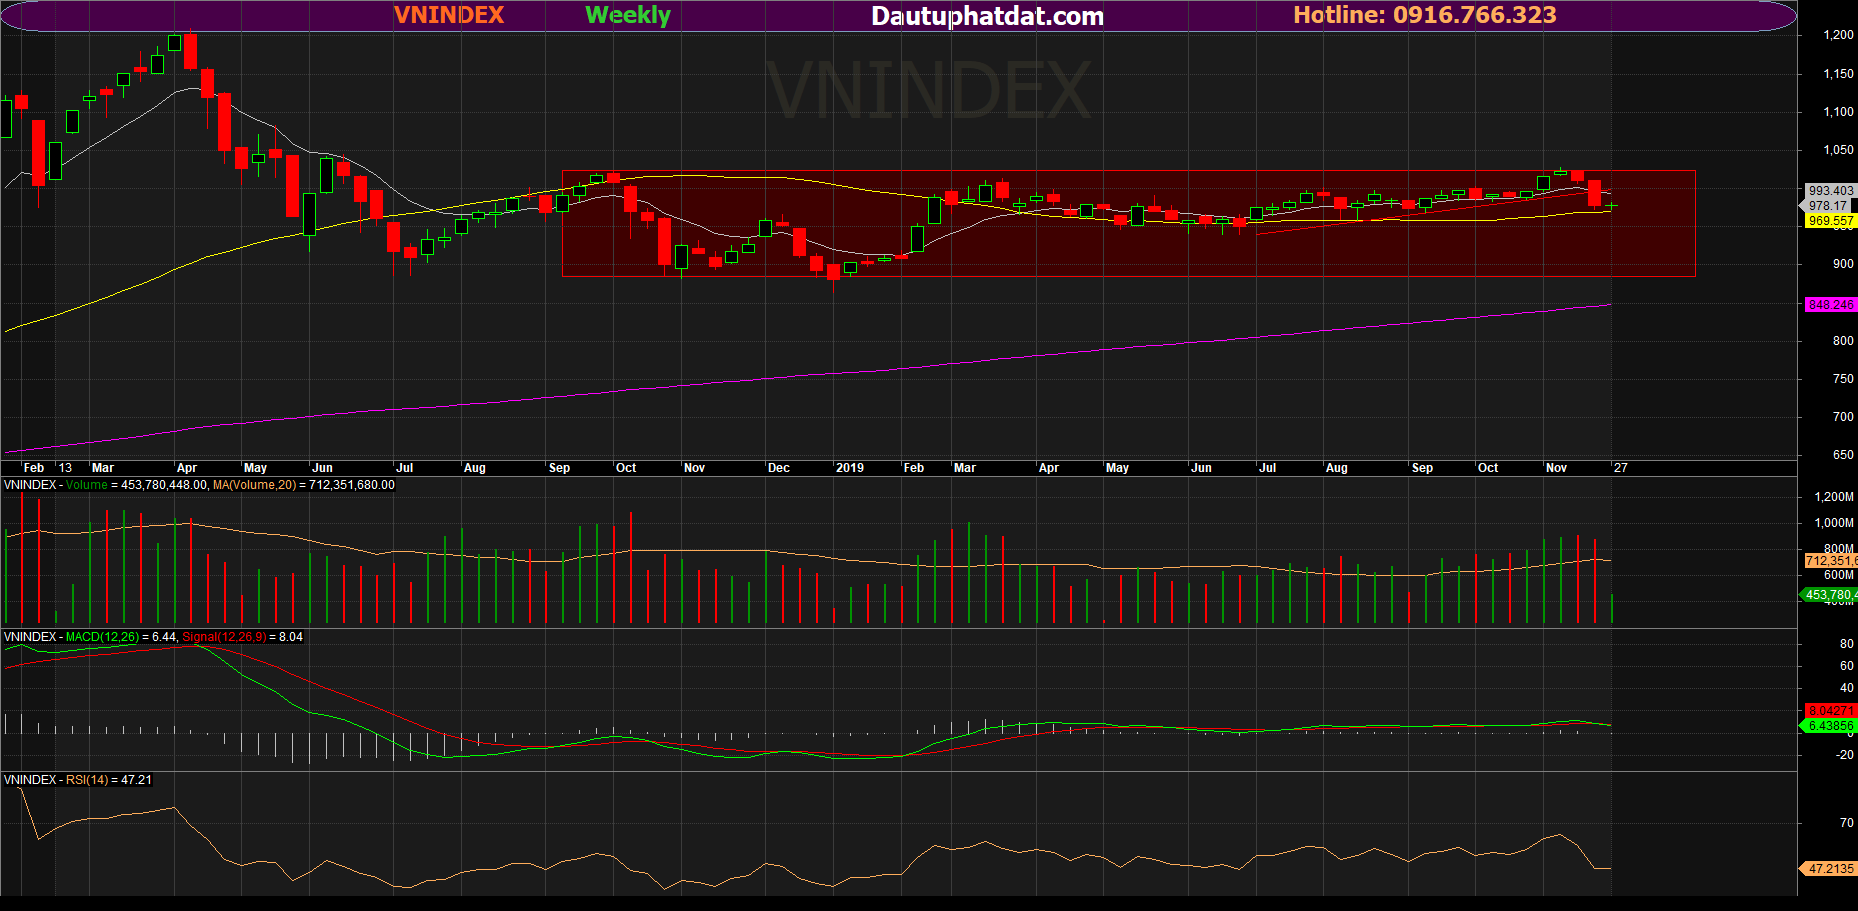 vnindex week